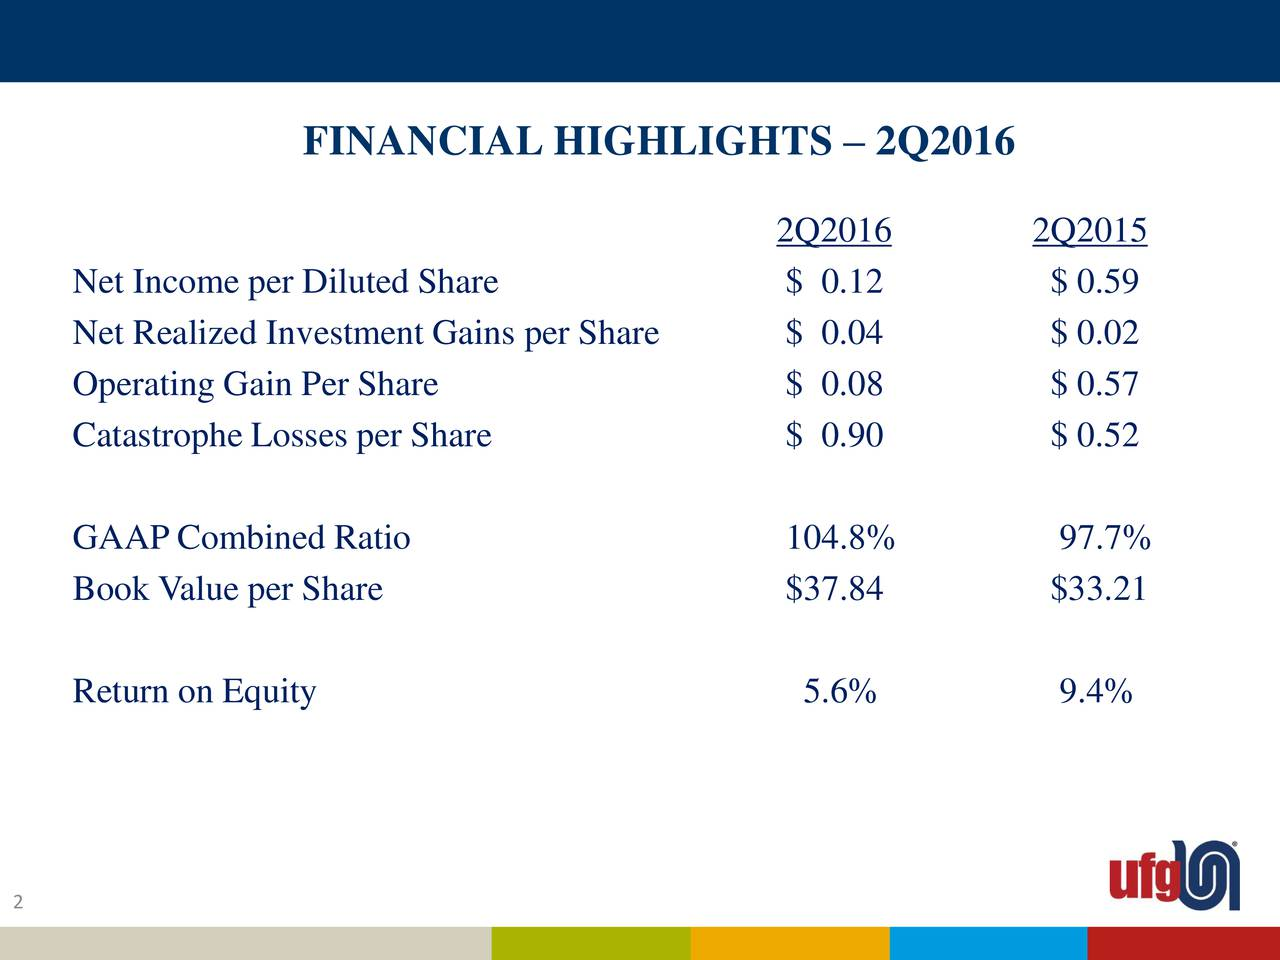 2Q2016 2Q2015 Net Income per Diluted Share $ 0.12 $ 0.59 Net Realized Investment Gains per Share $ 0.04 $ 0.02 Operating Gain Per Share $ 0.08 $ 0.57 Catastrophe Losses per Share $ 0.90 $ 0.52 GAAP Combined Ratio 104.8% 97.7% Book Value per Share $37.84 $33.21 Return on Equity 5.6% 9.4% 2